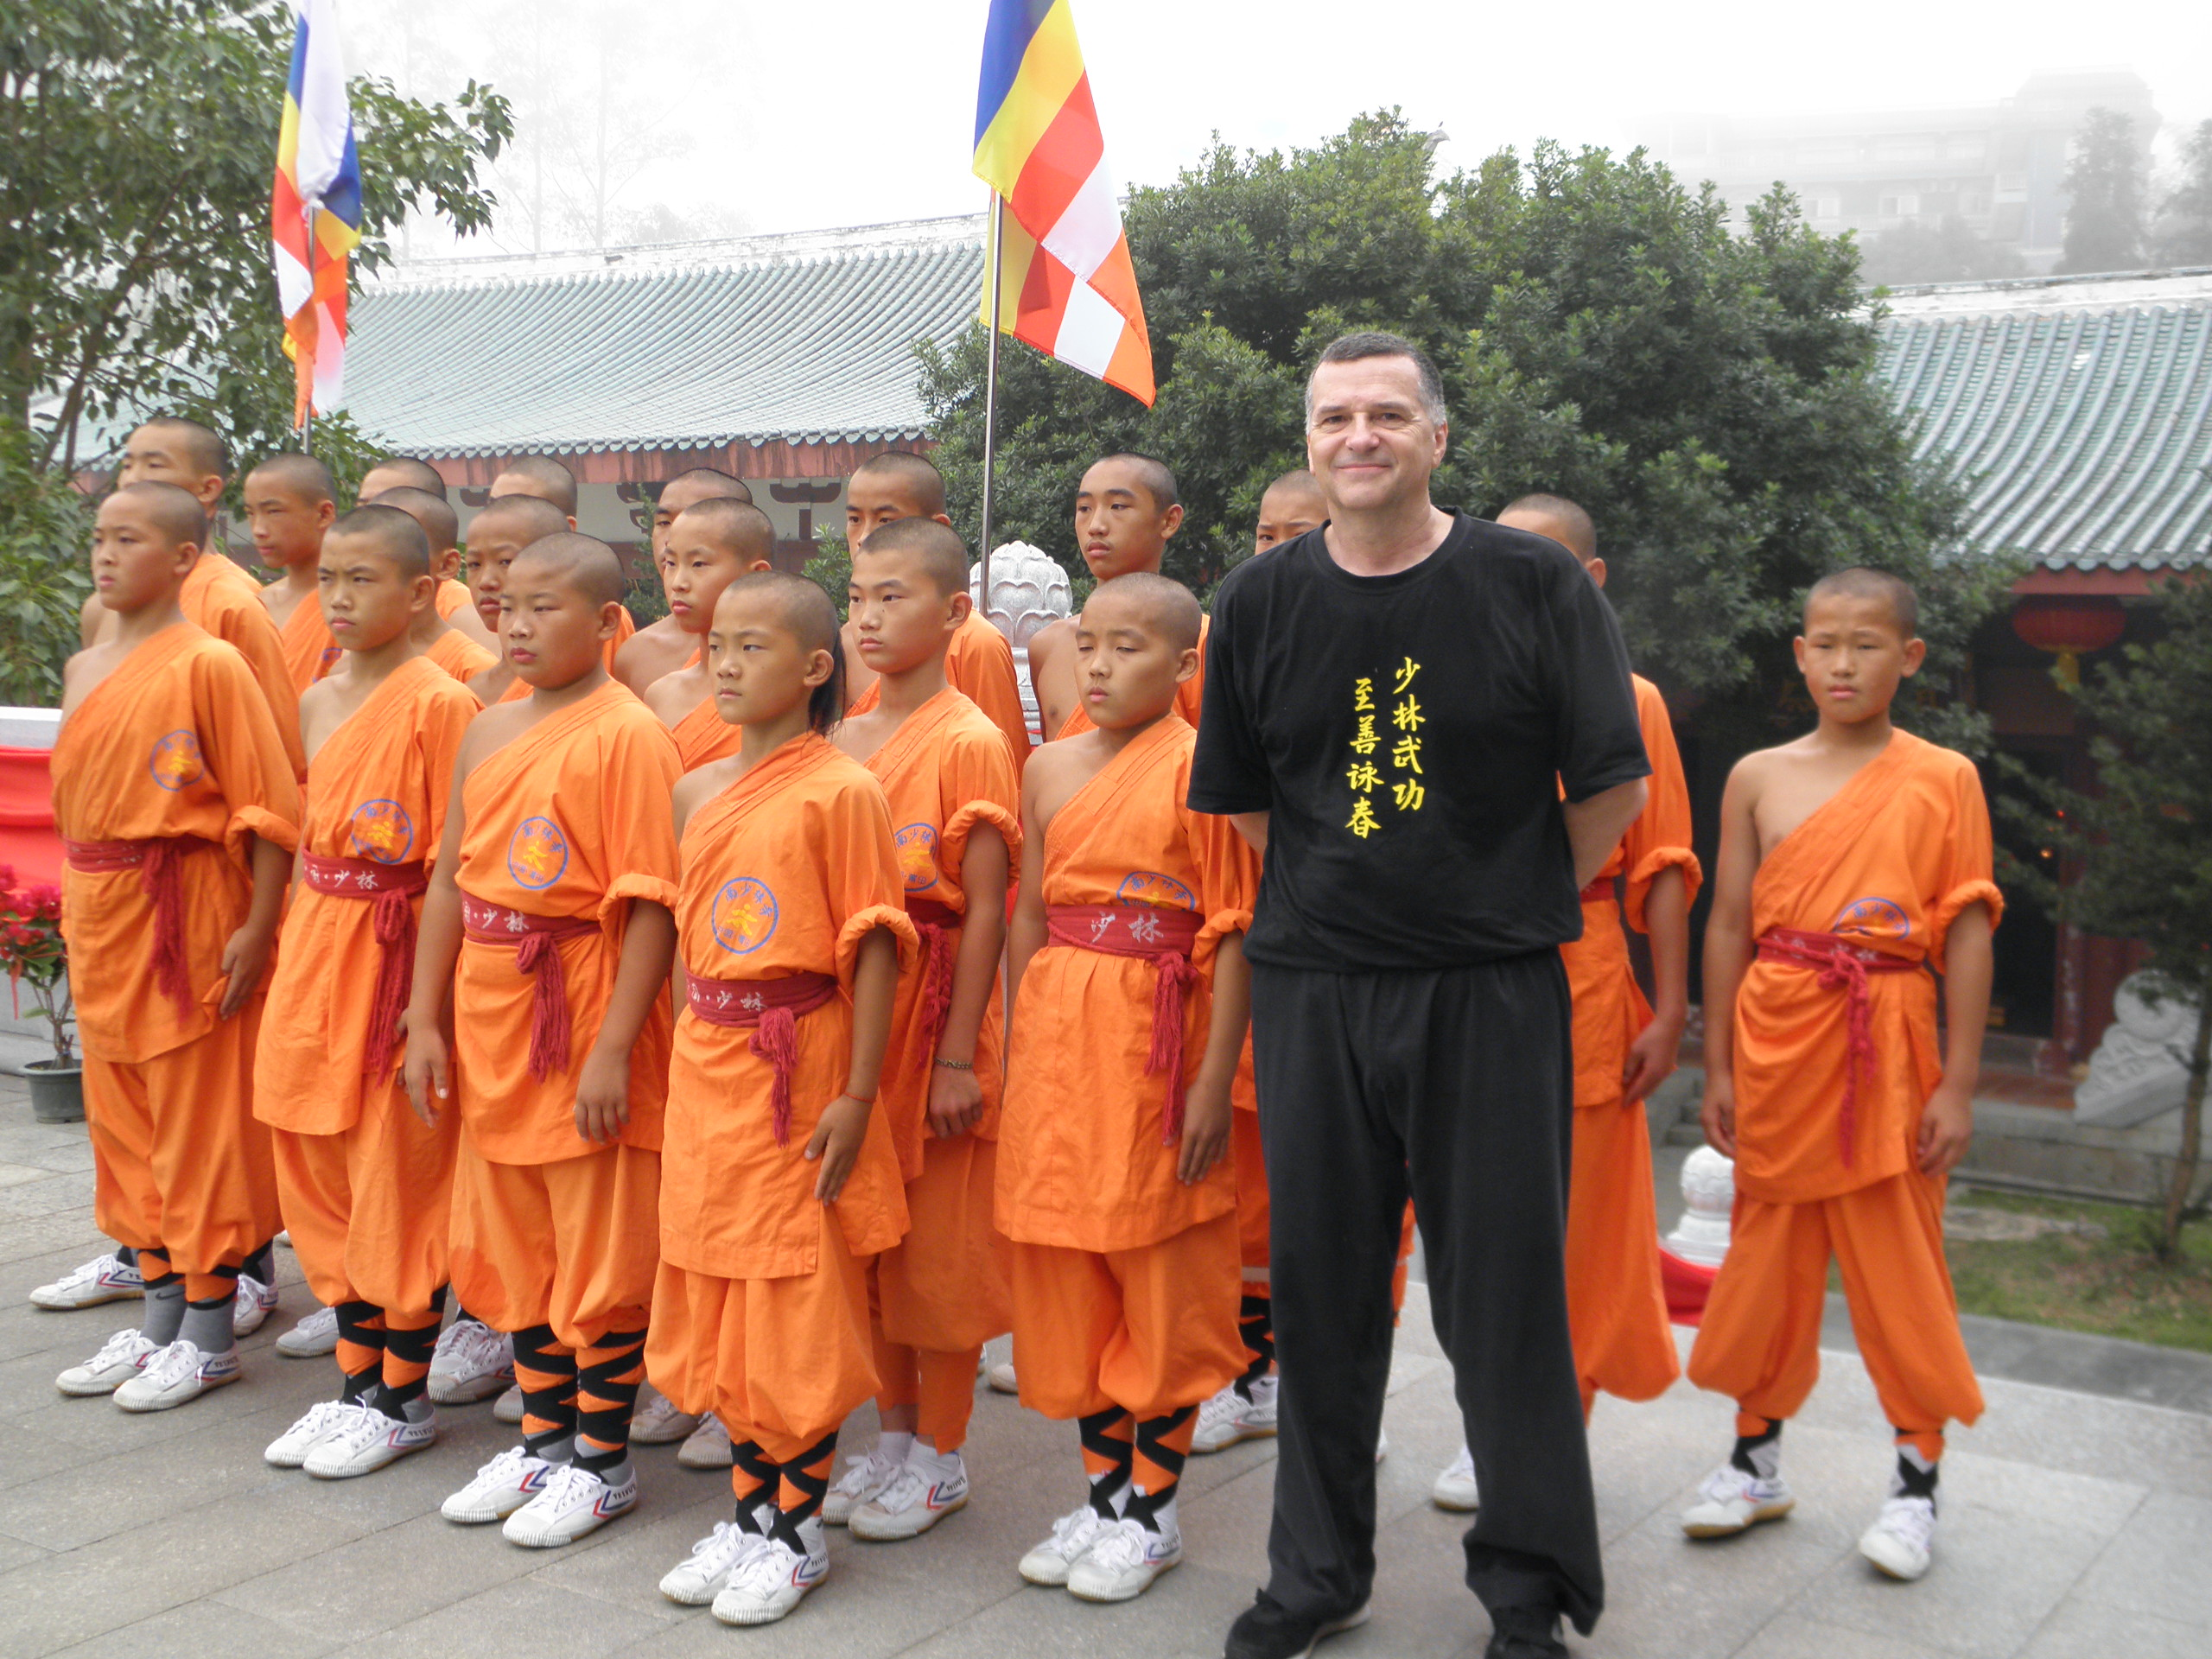 Paul with the young Shaolin monks